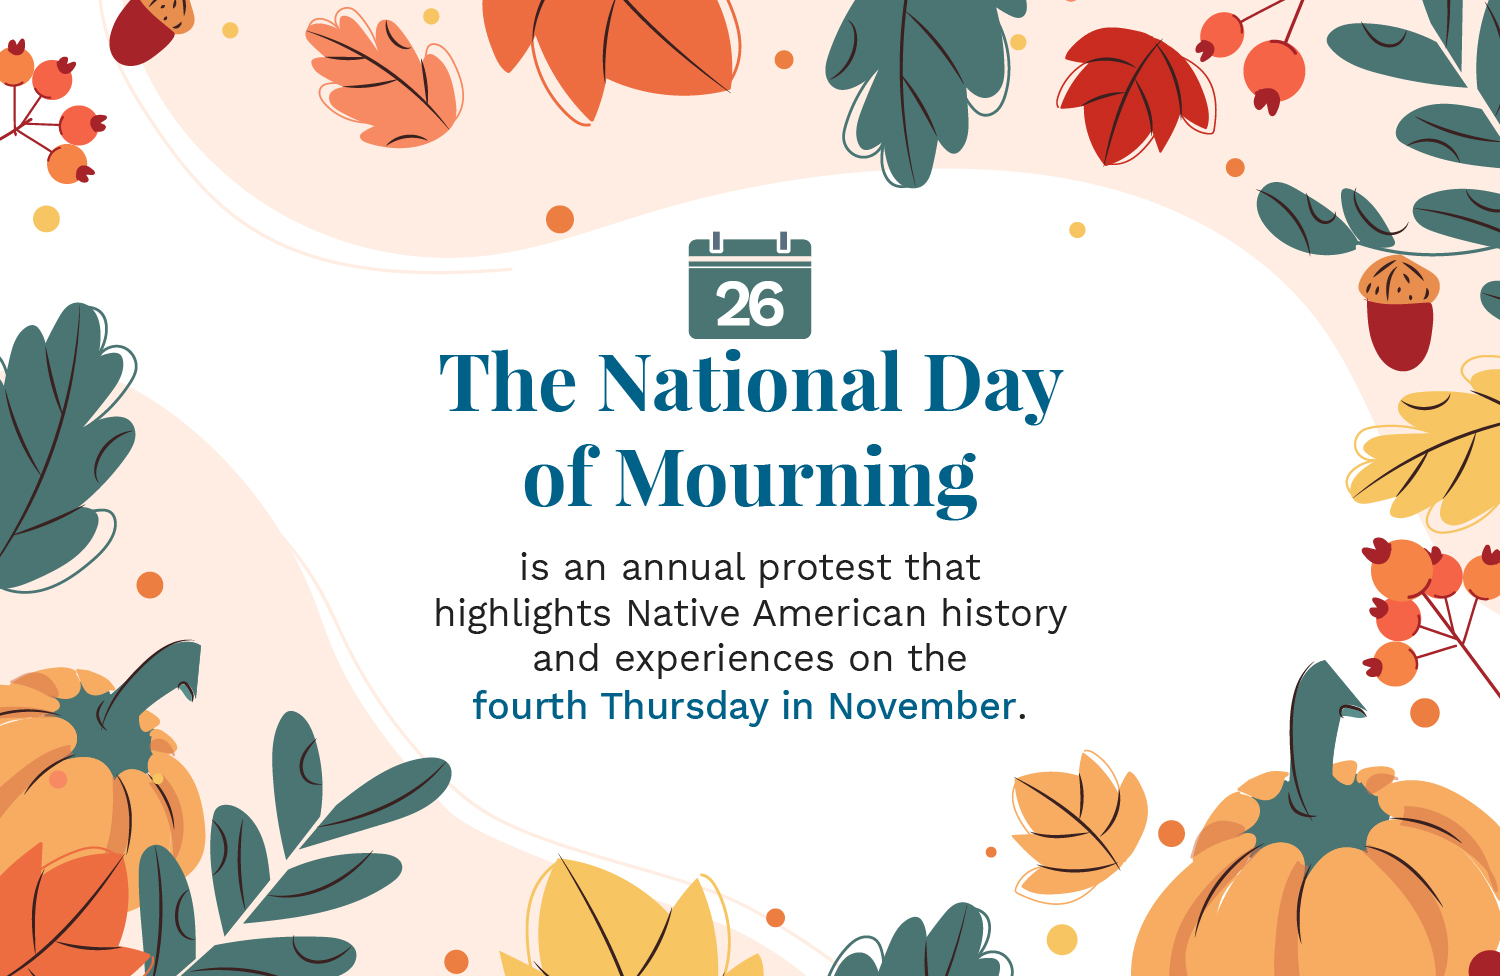 the national day of mourning definition